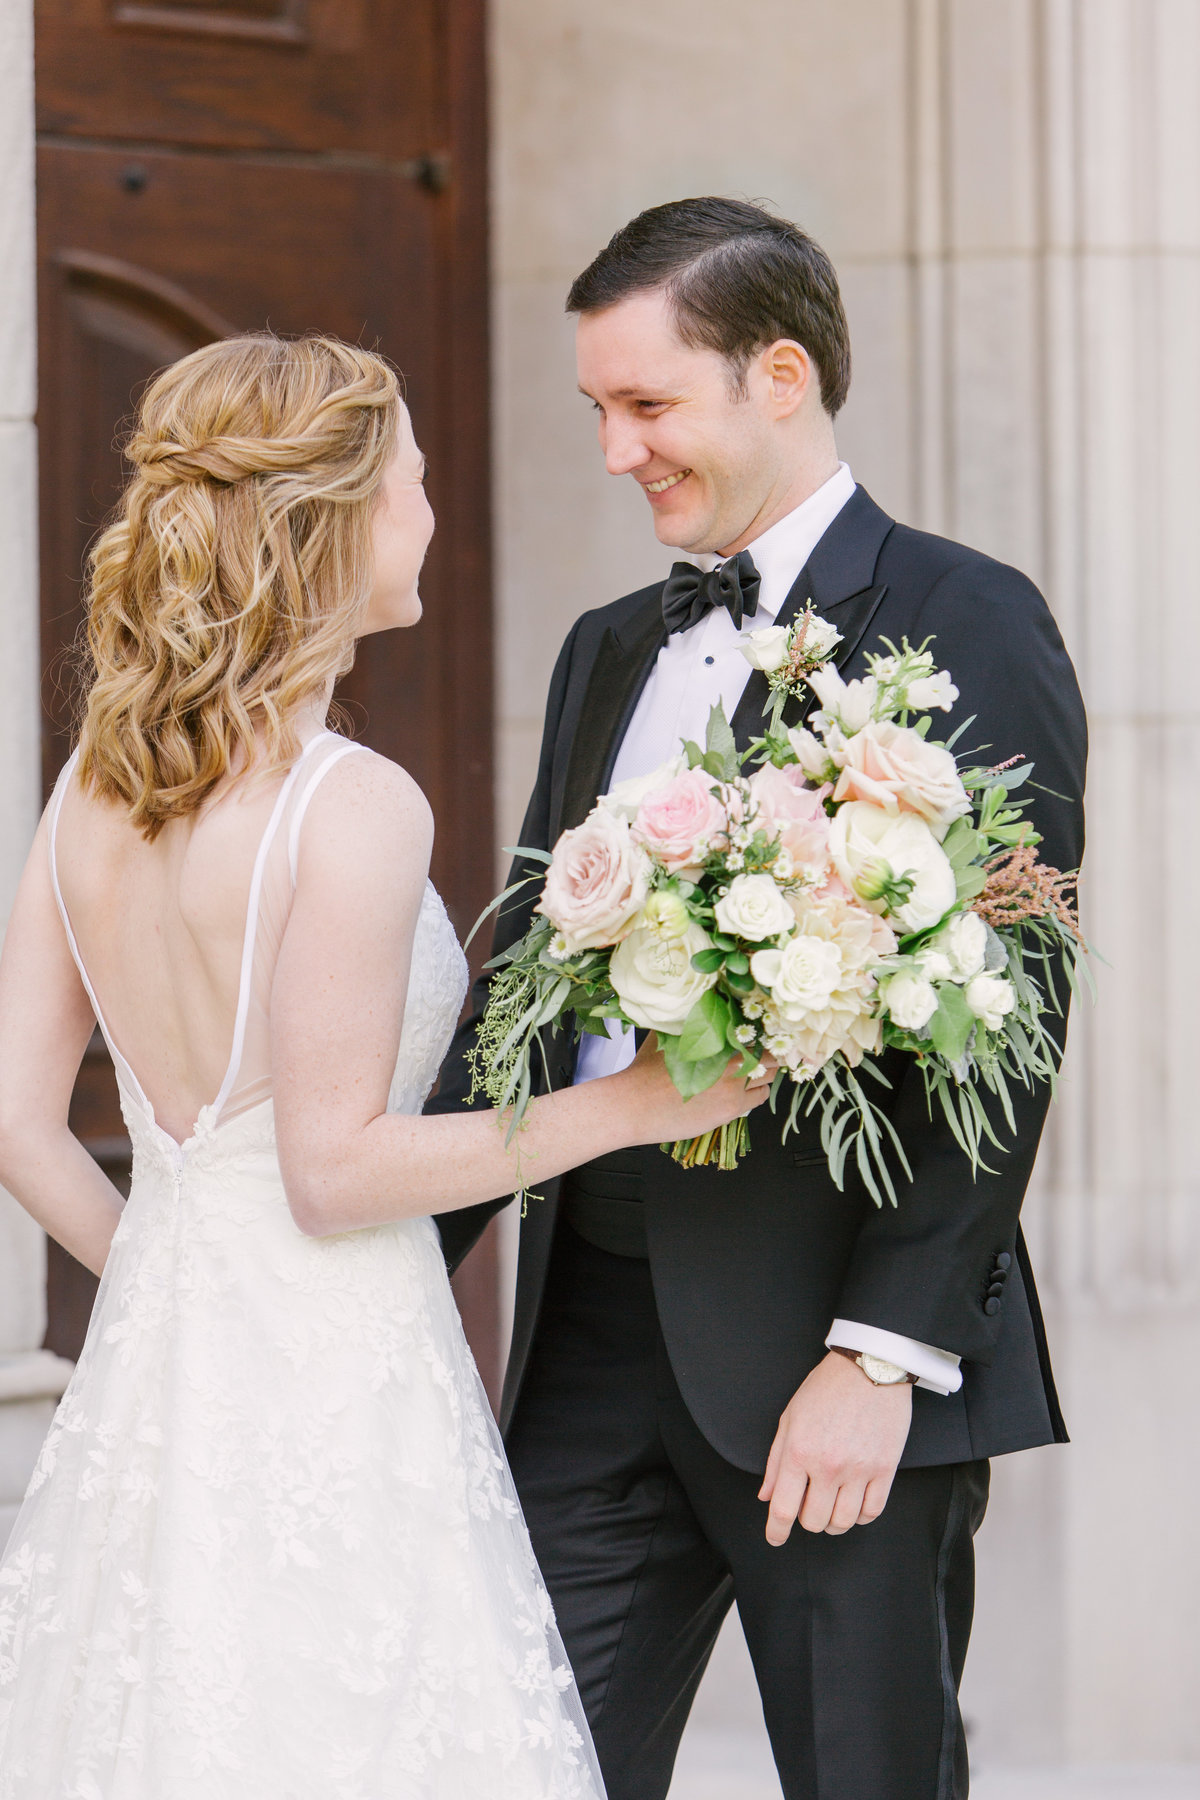 Scottish Rite Cathedral Wedding First Look Bride and Groom Photo